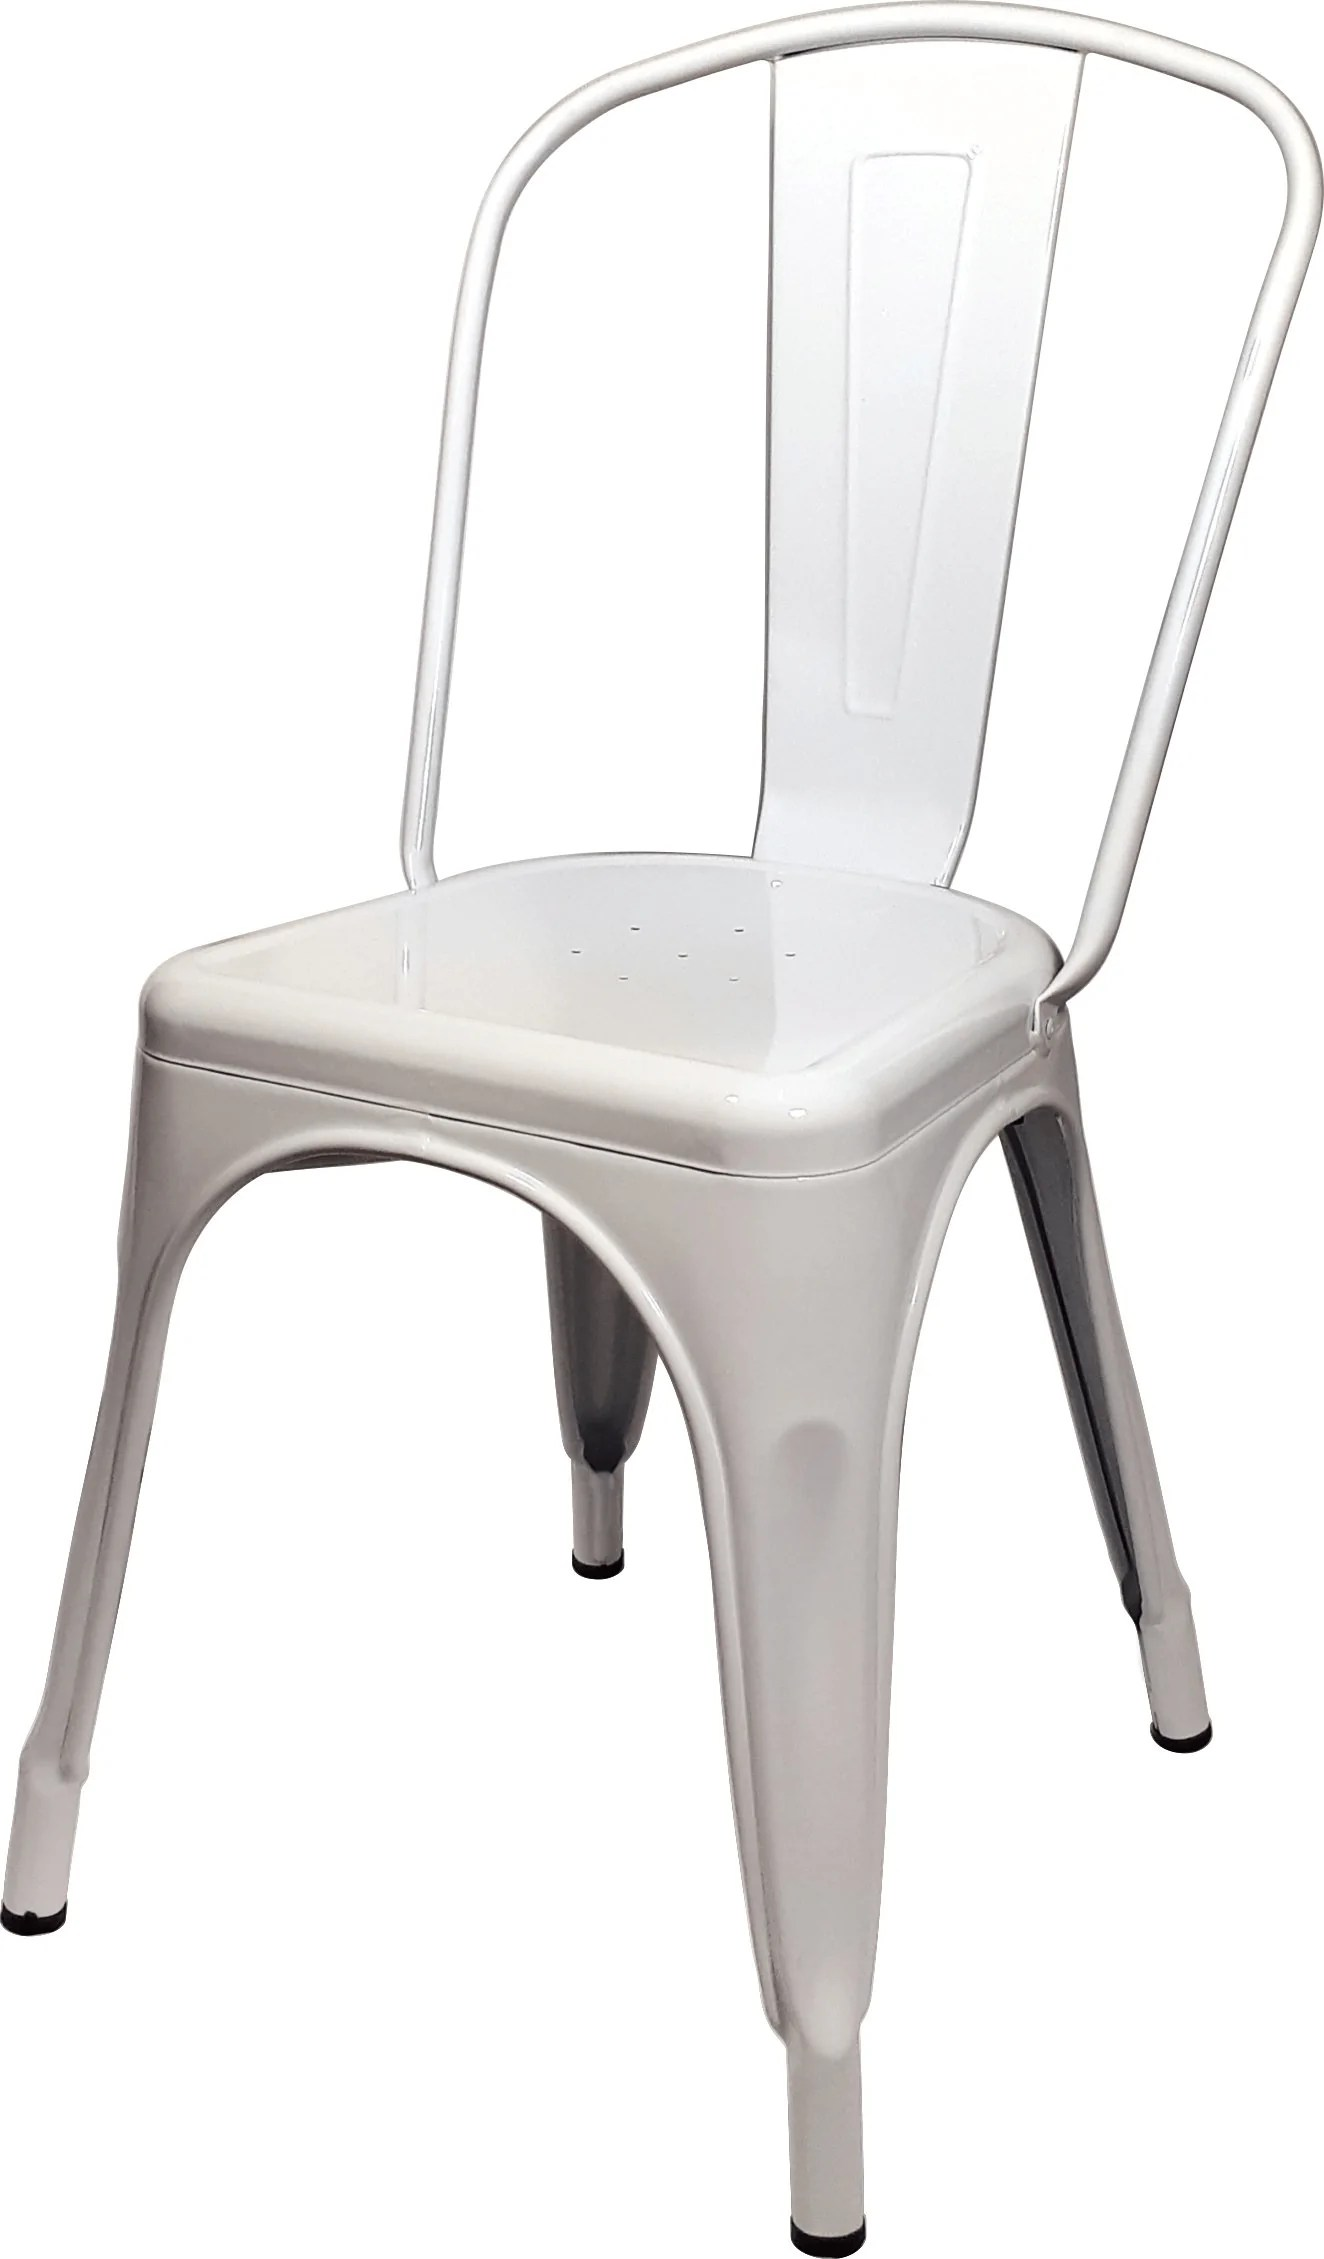 Egg Chair Perth Tolix Replica Cafe Chair White Buy Online Afterpay